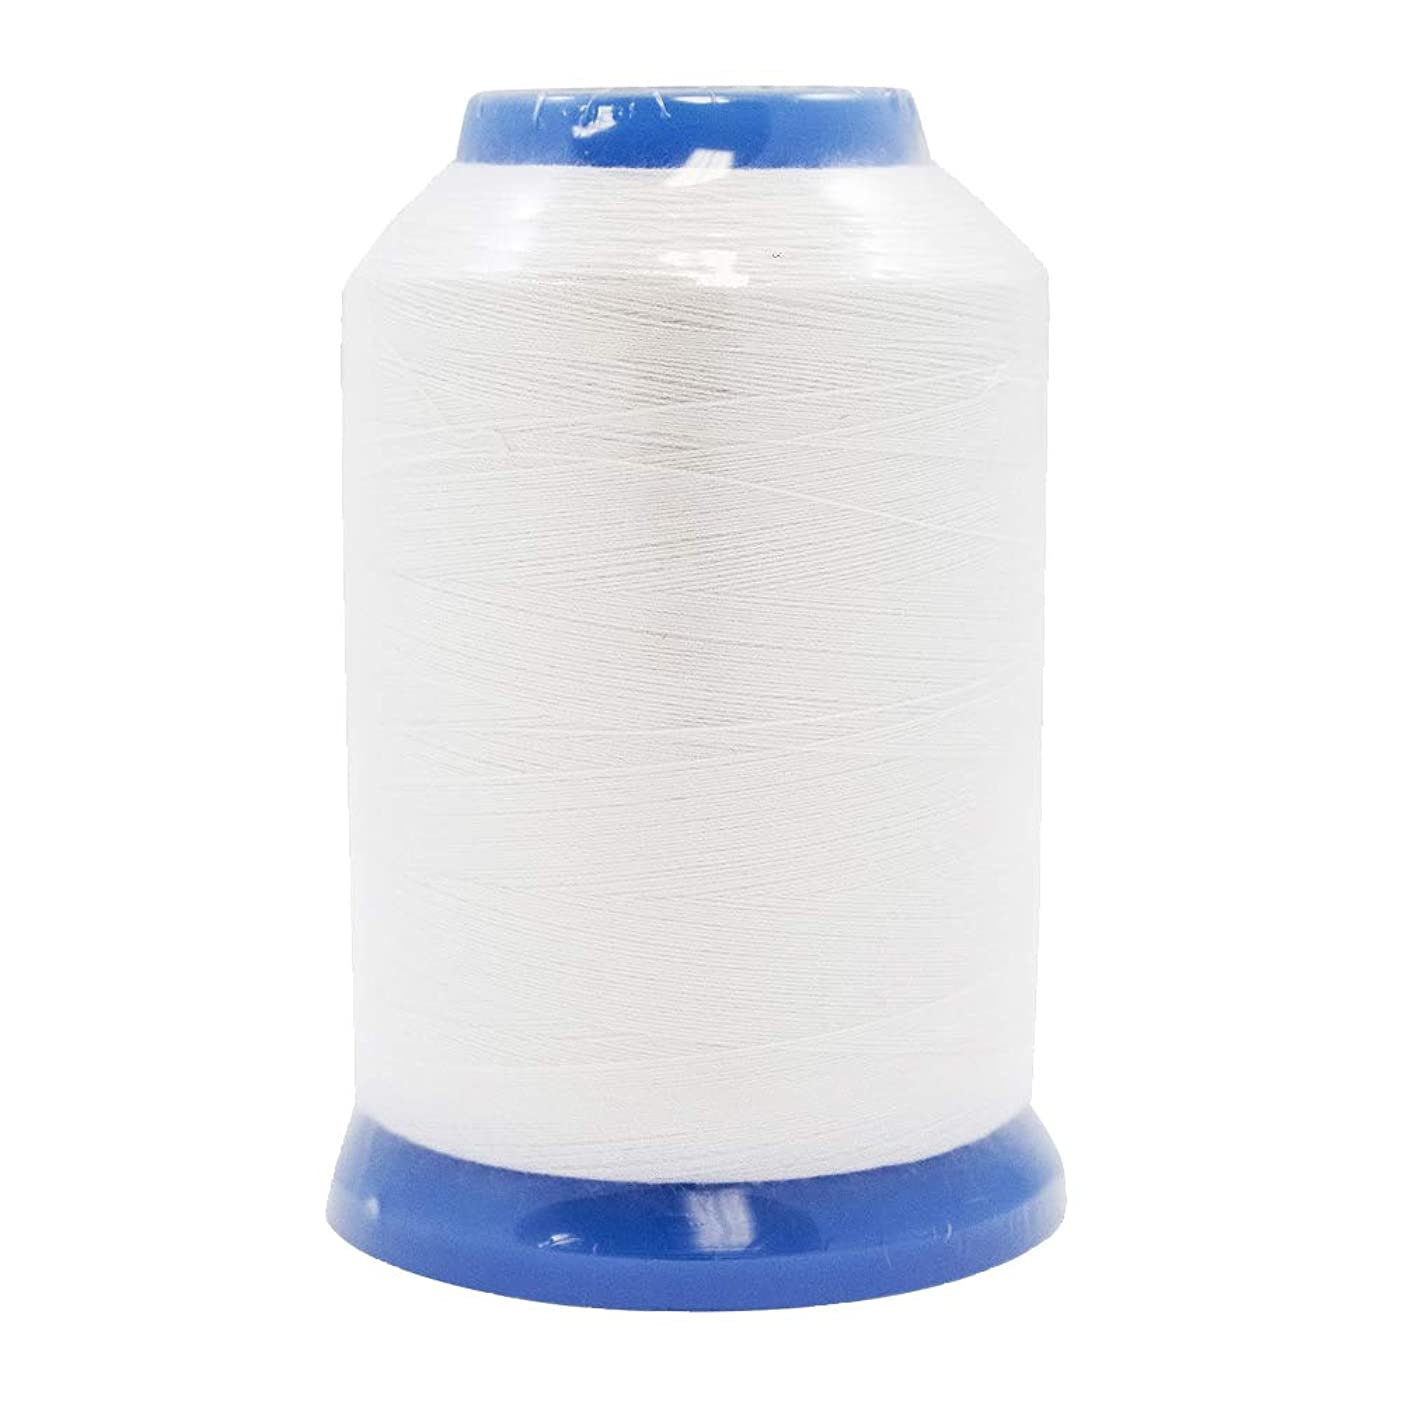 Janome Embroidery Bobbin Thread White in 1600m Spools